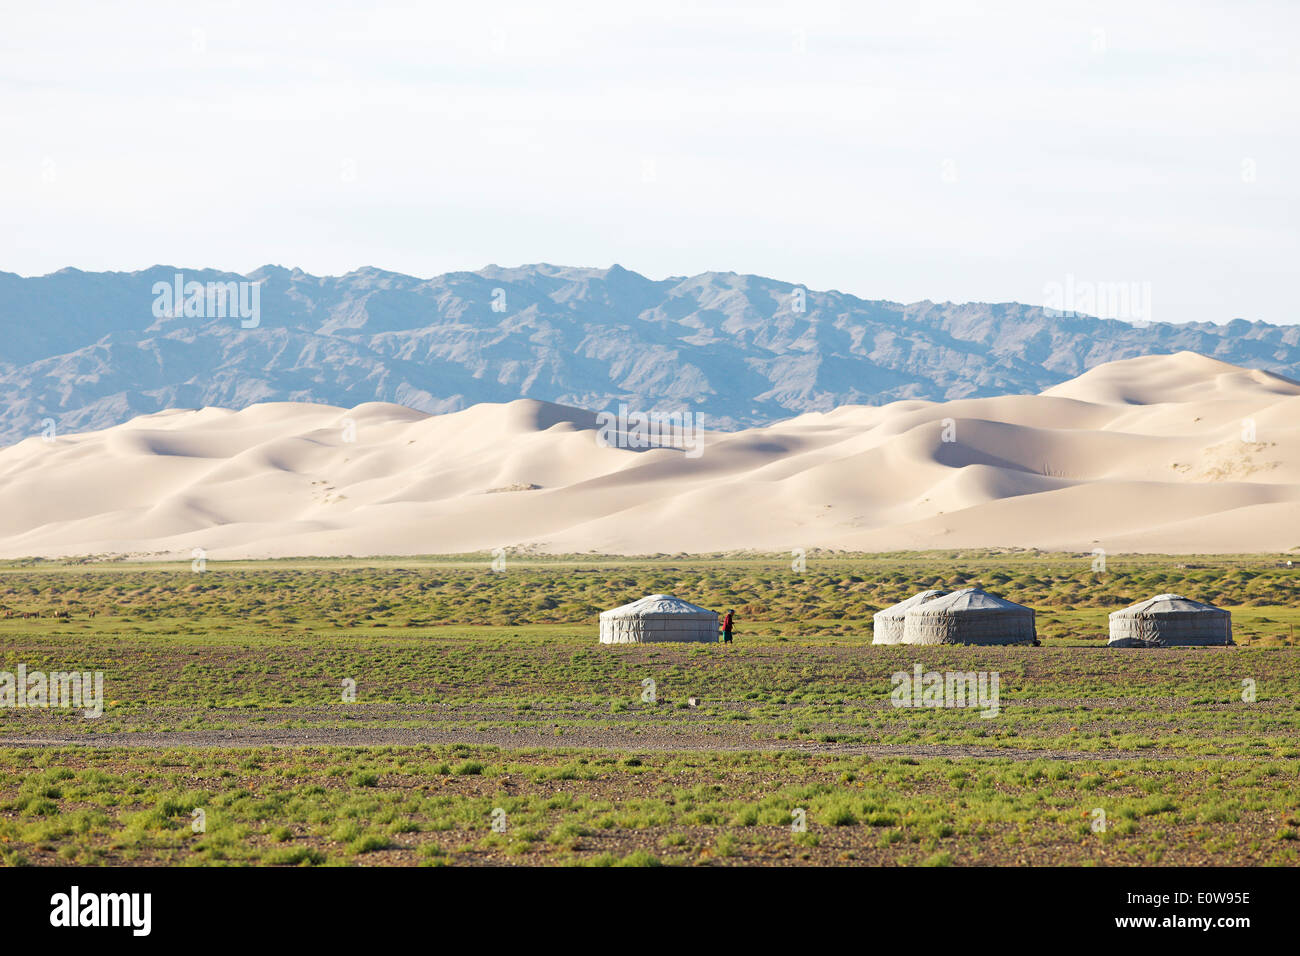 Yurts or Gers, on the green steppe in front of the large sand dunes of Khongoryn Els, Gobi Gurvansaikhan National Park - Stock Image